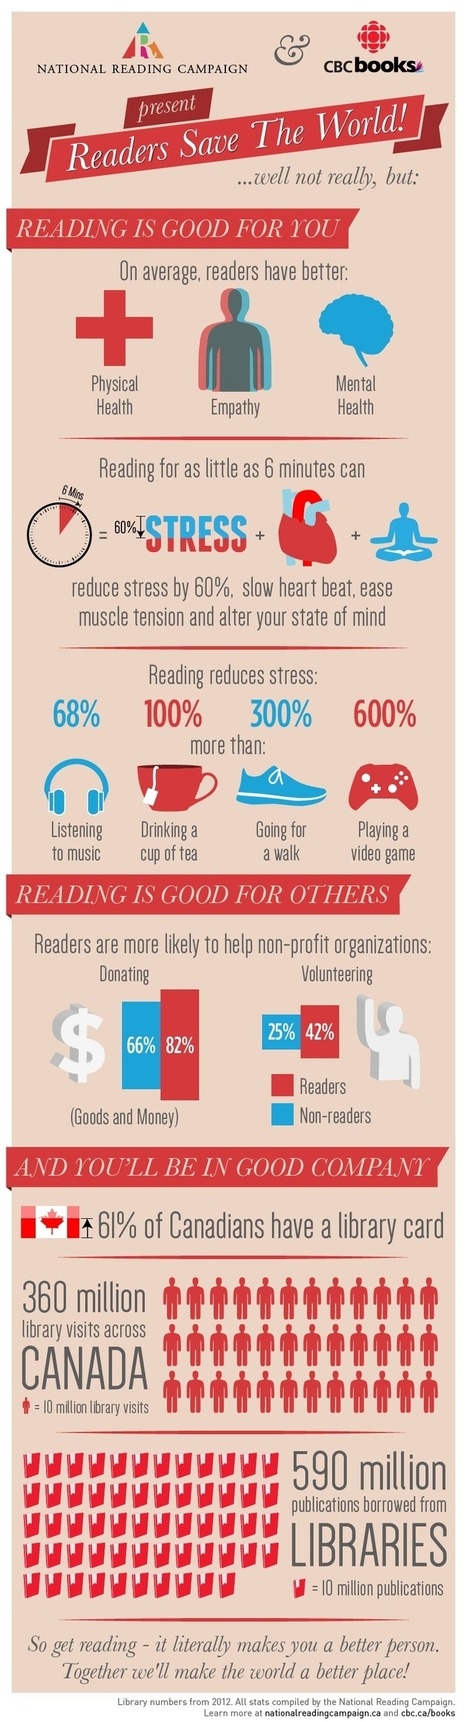 Infographic: Reading Can be Good for Your Health - The Digital Reader | Bibliotecas Escolares | Scoop.it